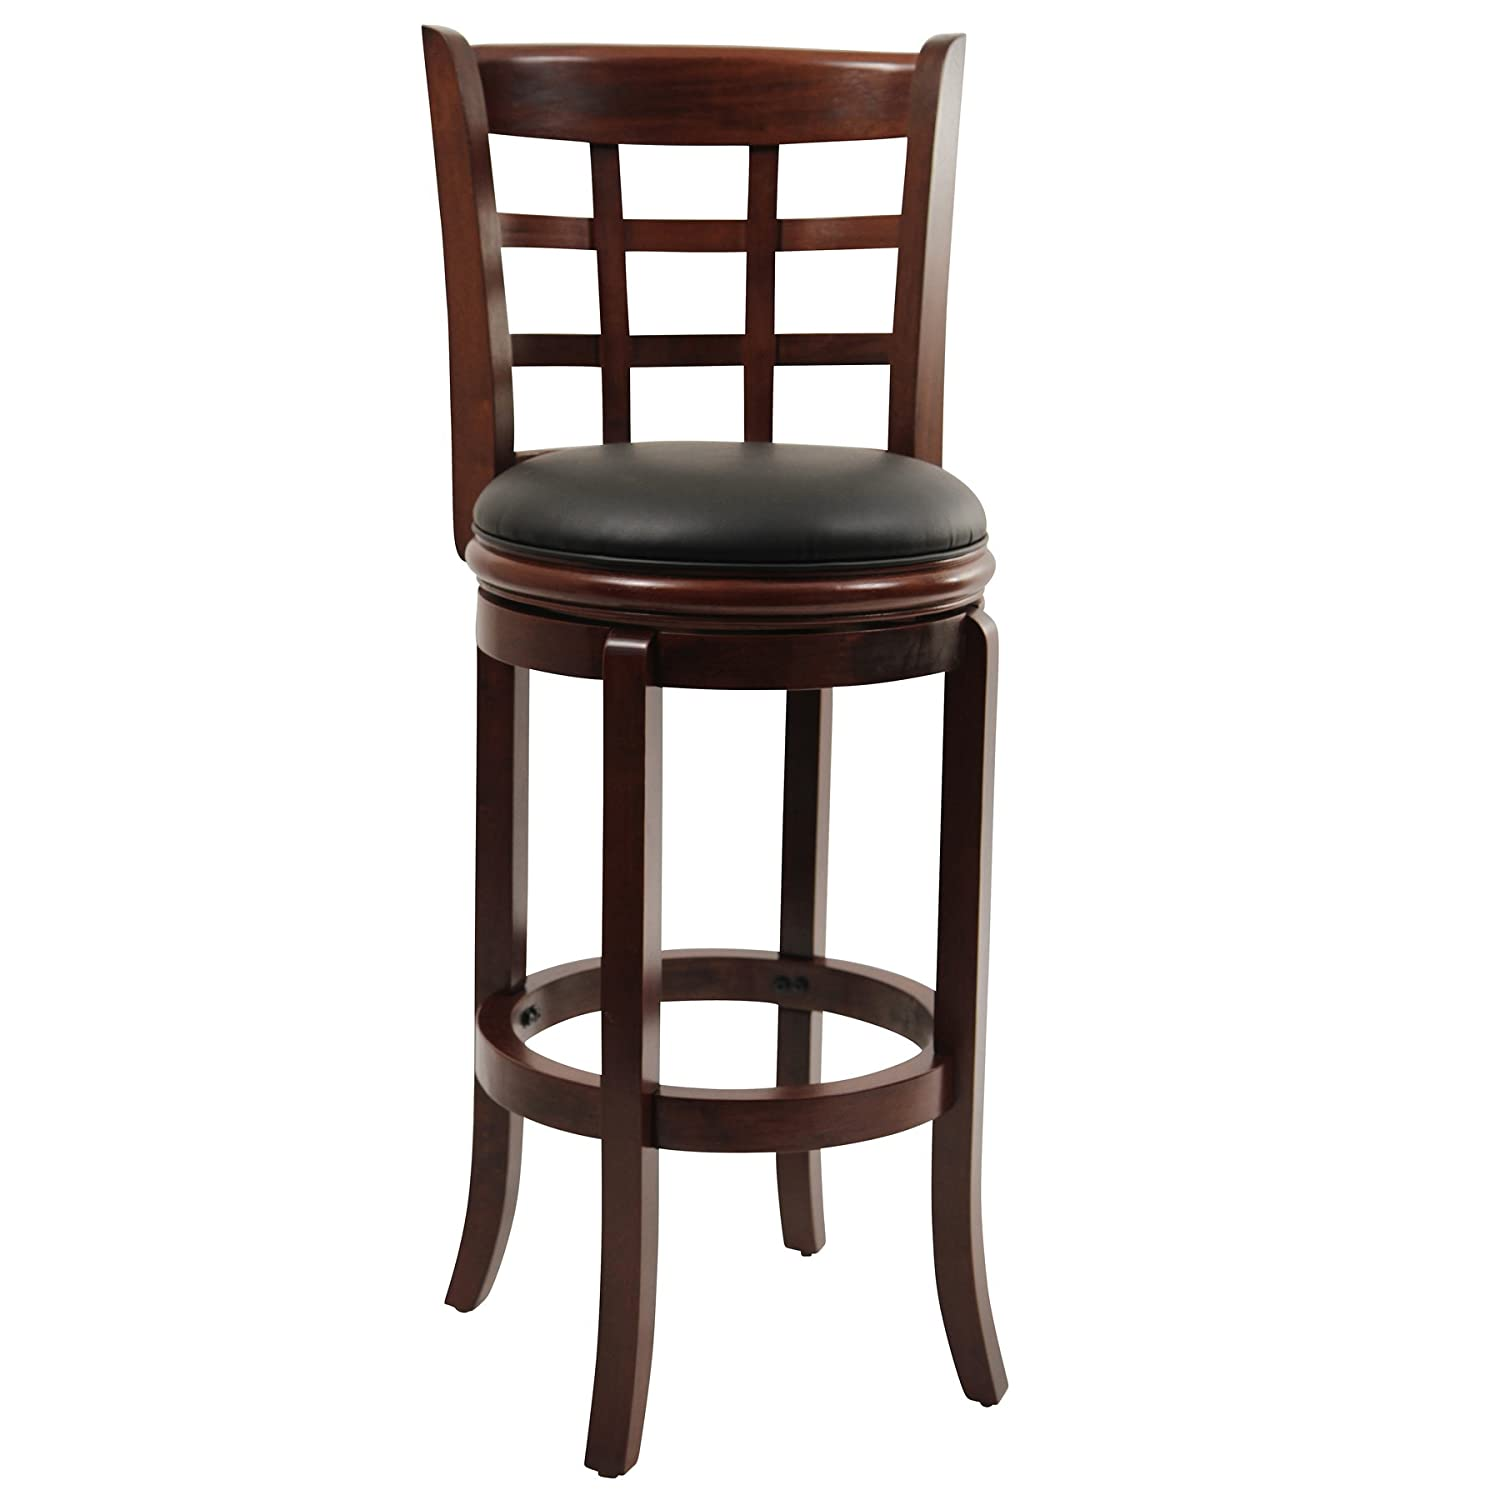 Very Impressive portraiture of Cheap High Wooden Swivel Bar Stools with Back 29 Inch Cherry with #603D33 color and 1500x1500 pixels